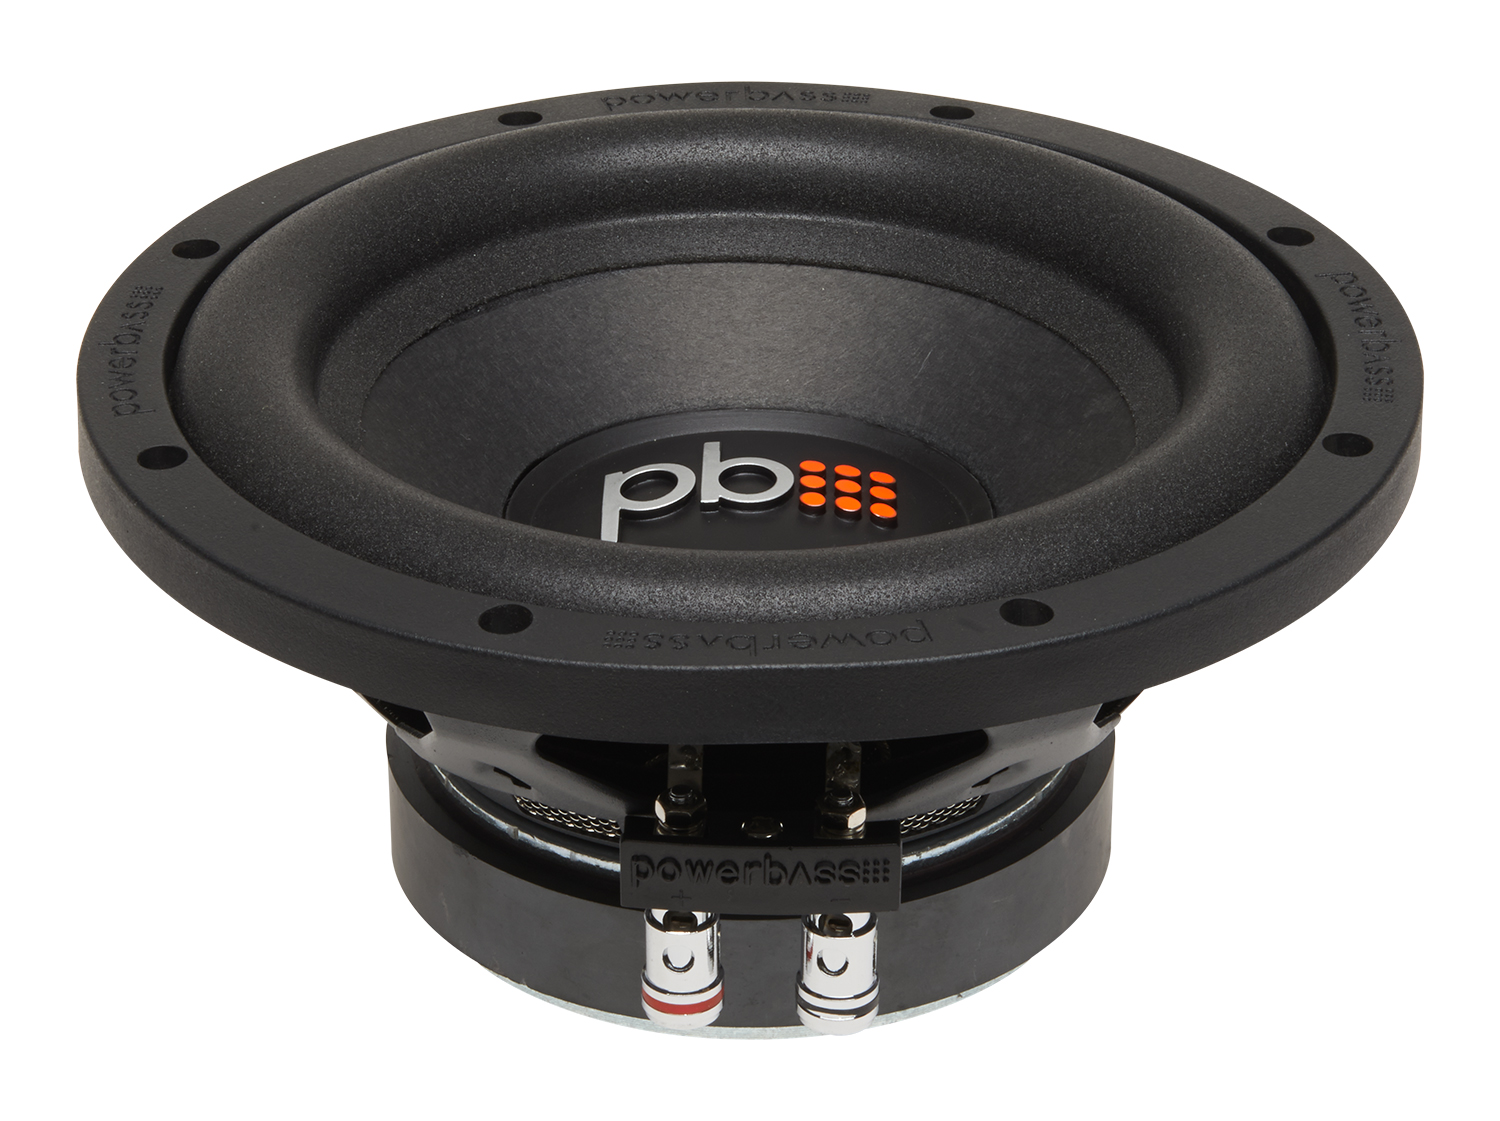 "Powerbass S-84 S-Series 8"" Single 4-Ohm Subwoofer with 4-Layer Paper/Wool Cone"